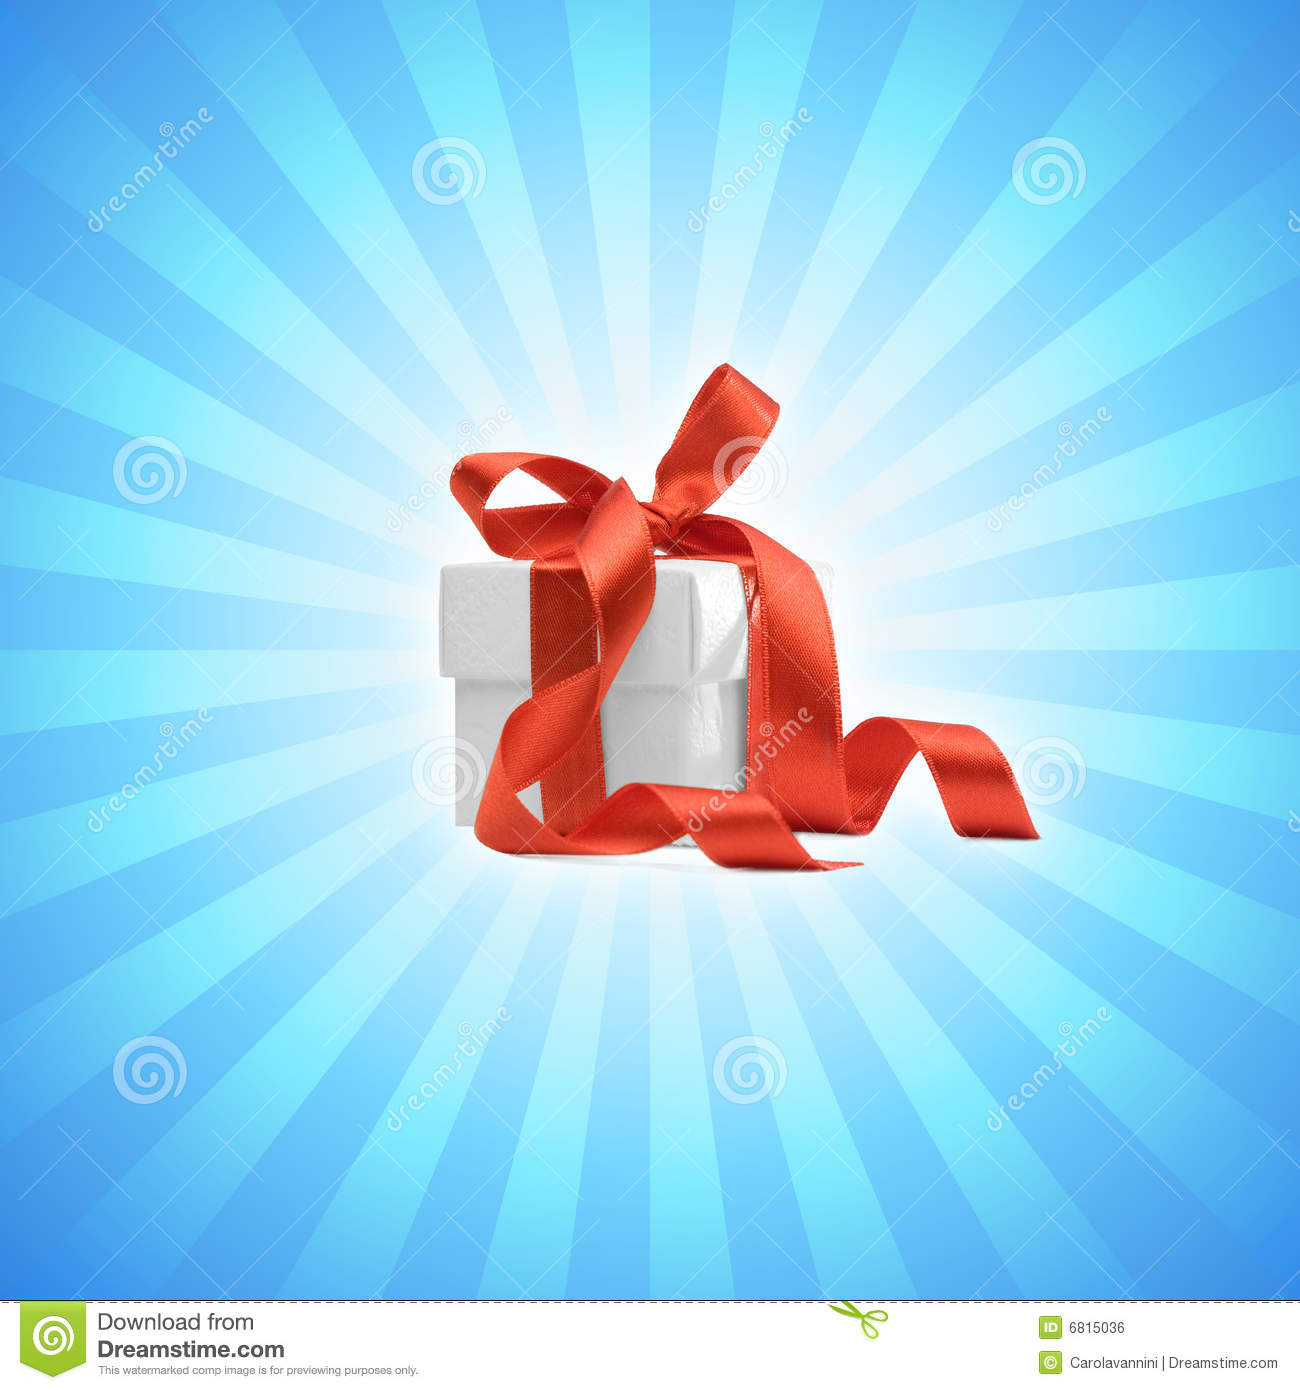 Present box with light blue background